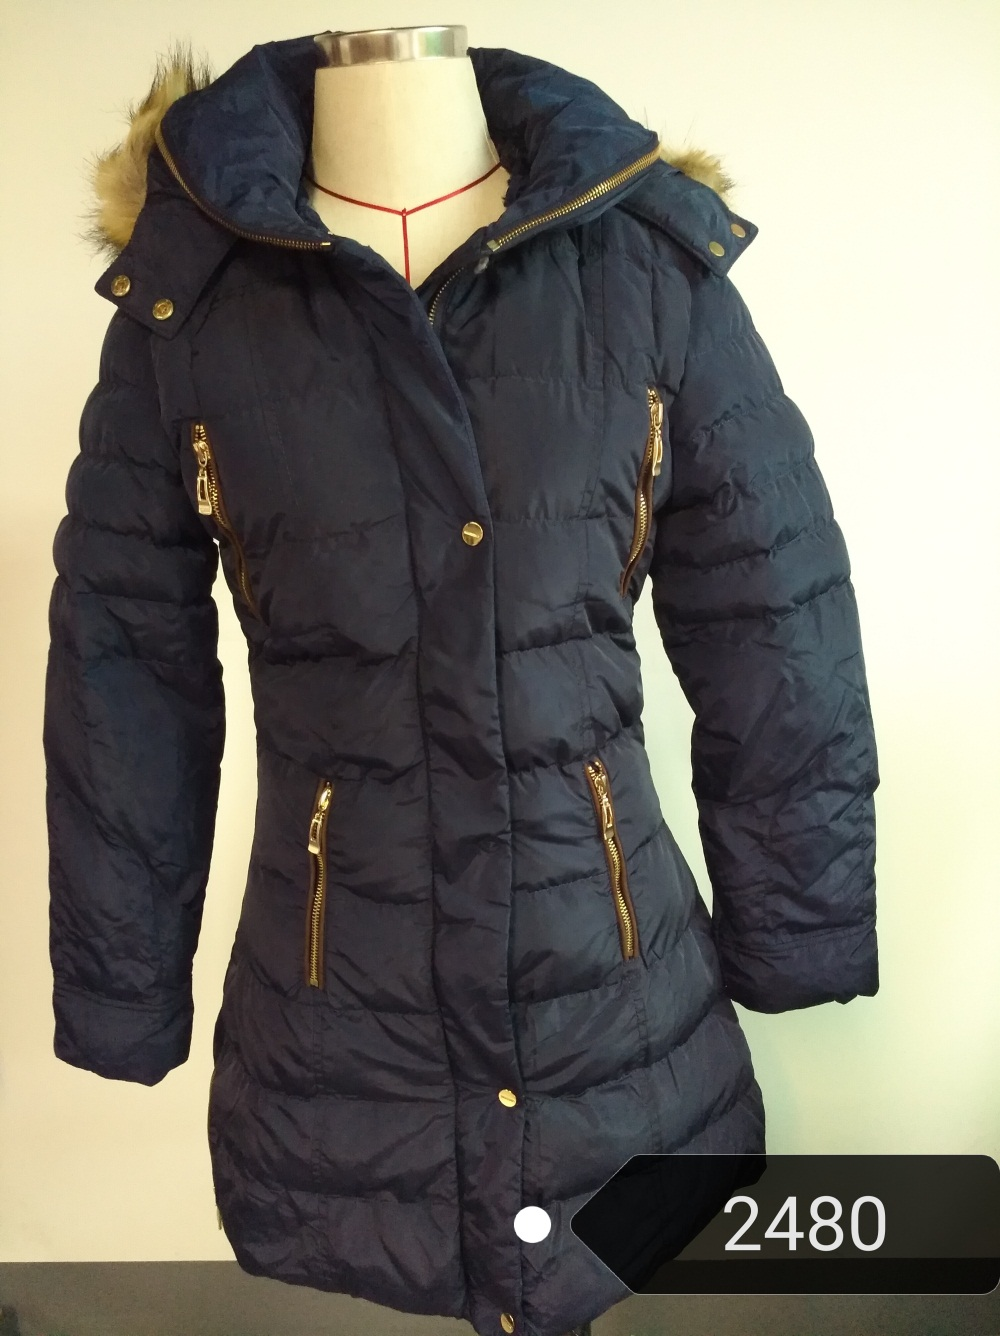 women jacket,fashion jacket,latest winter jacket for women 2480